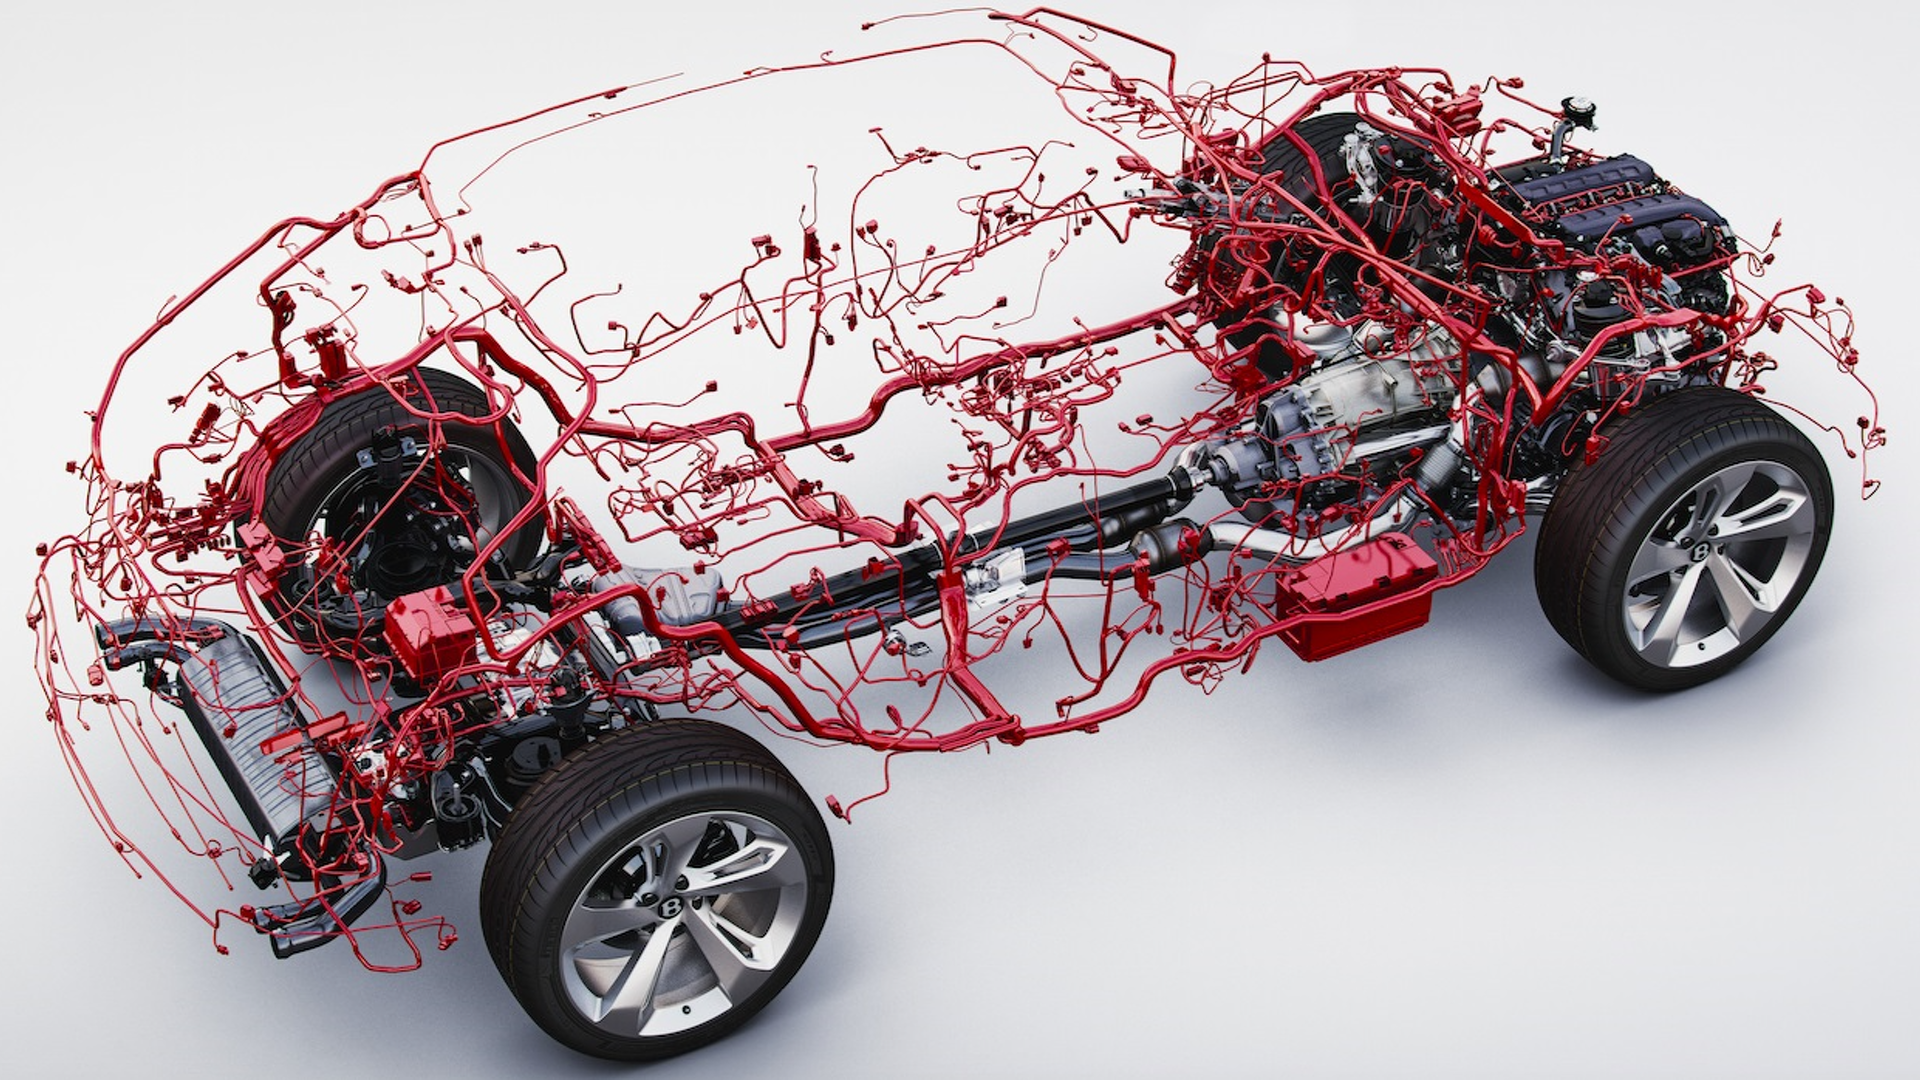 bentley bentayga wiring harness is weirdly beautiful all types of wiring diagram all types of wiring diagram